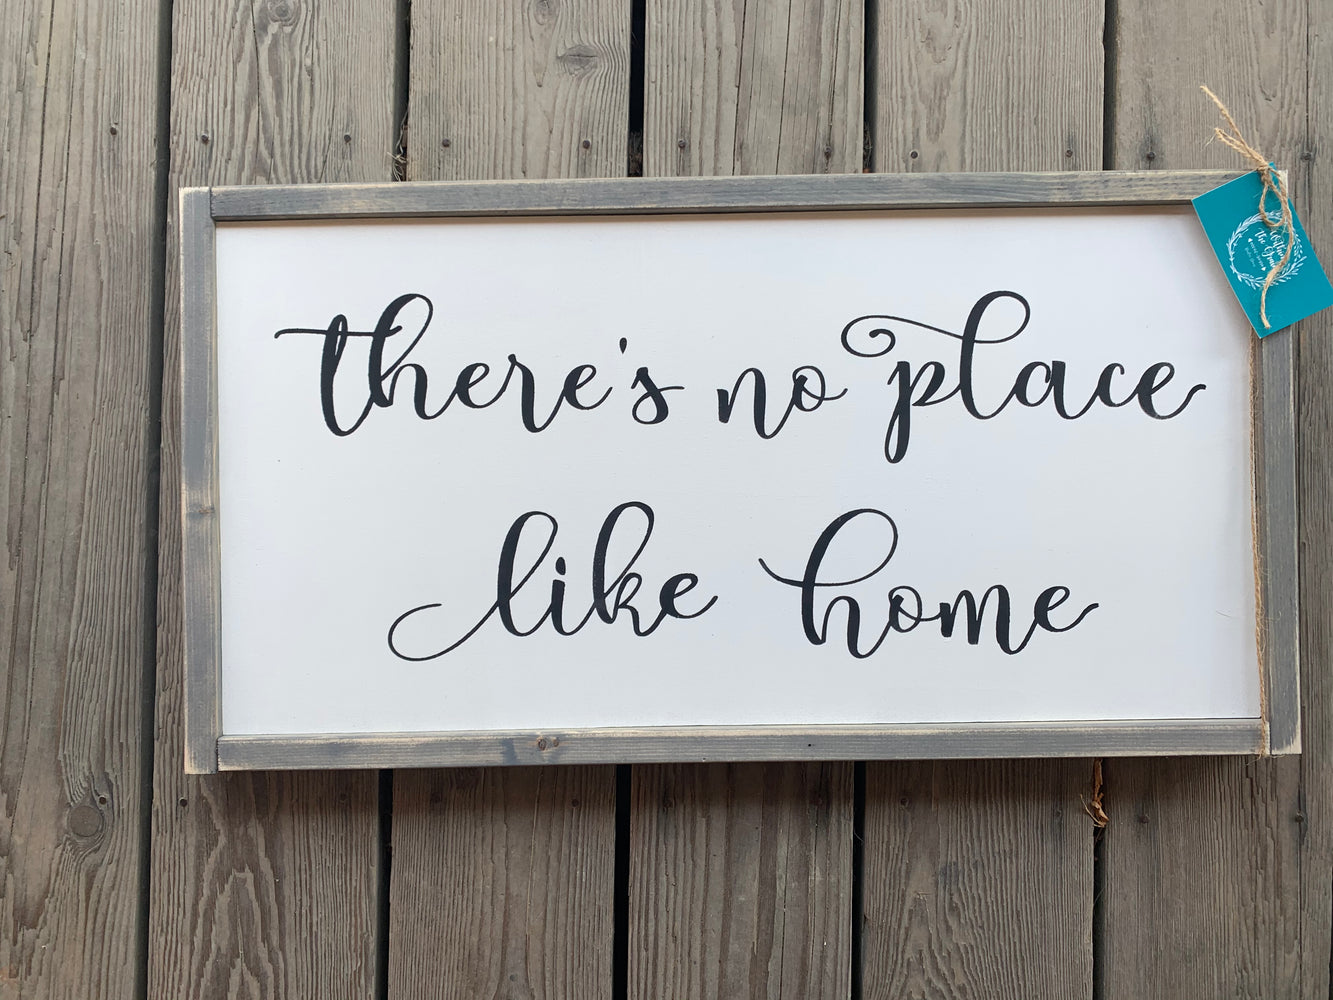 There's no place like home - Art Consign